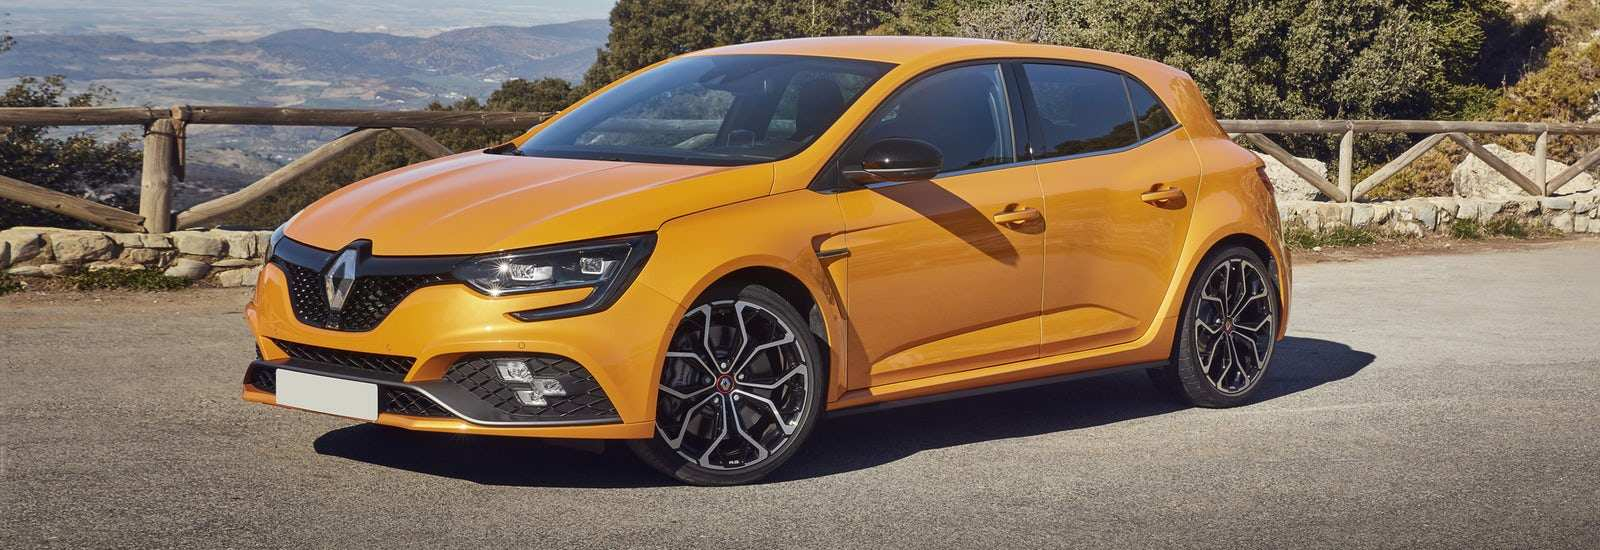 14 Gallery of 2019 Renault Megane Rs Performance and New Engine with 2019 Renault Megane Rs